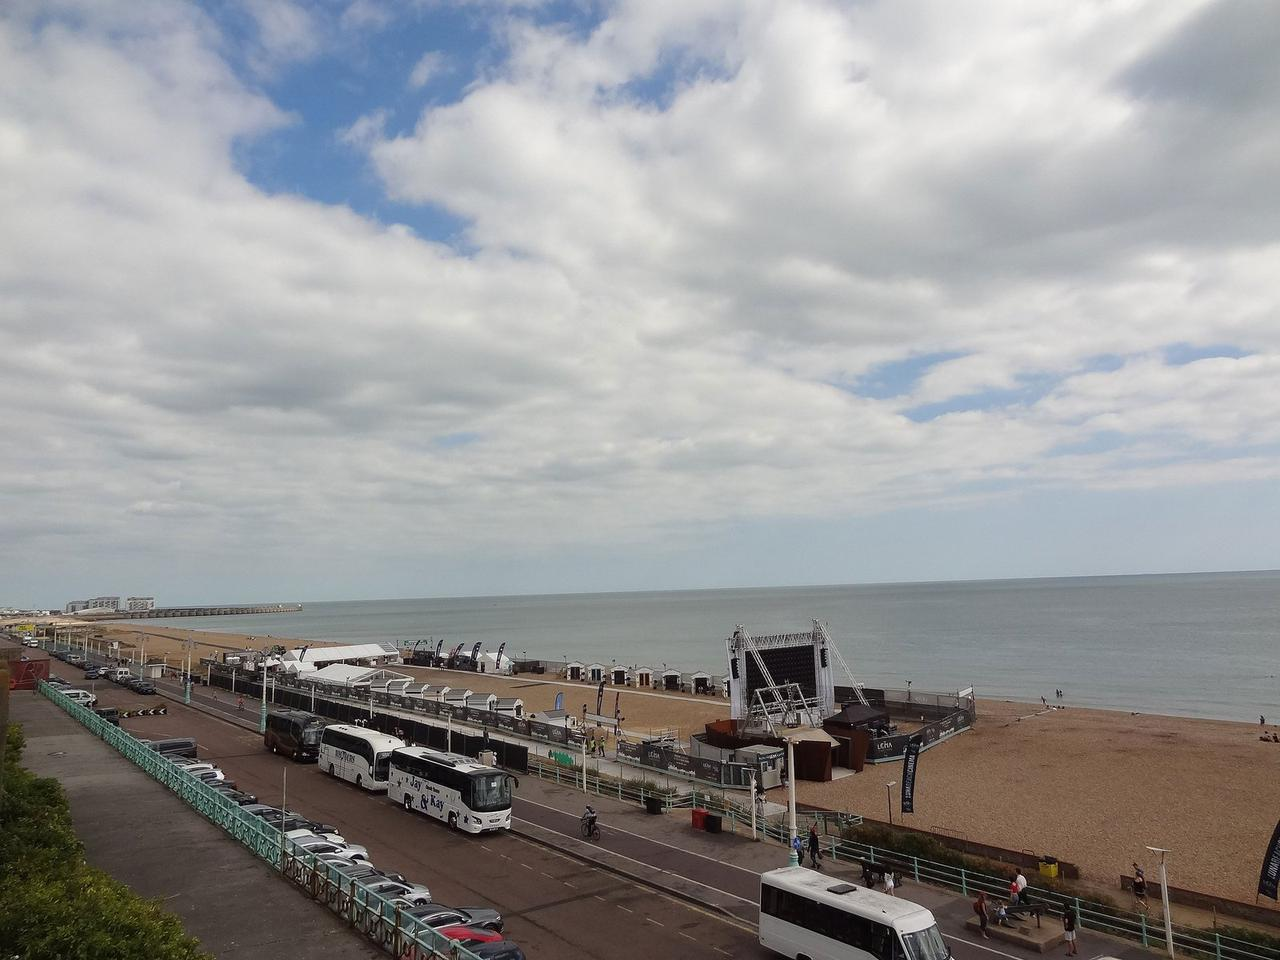 Beachfront Apartment, Brighton & Hove Images - 8